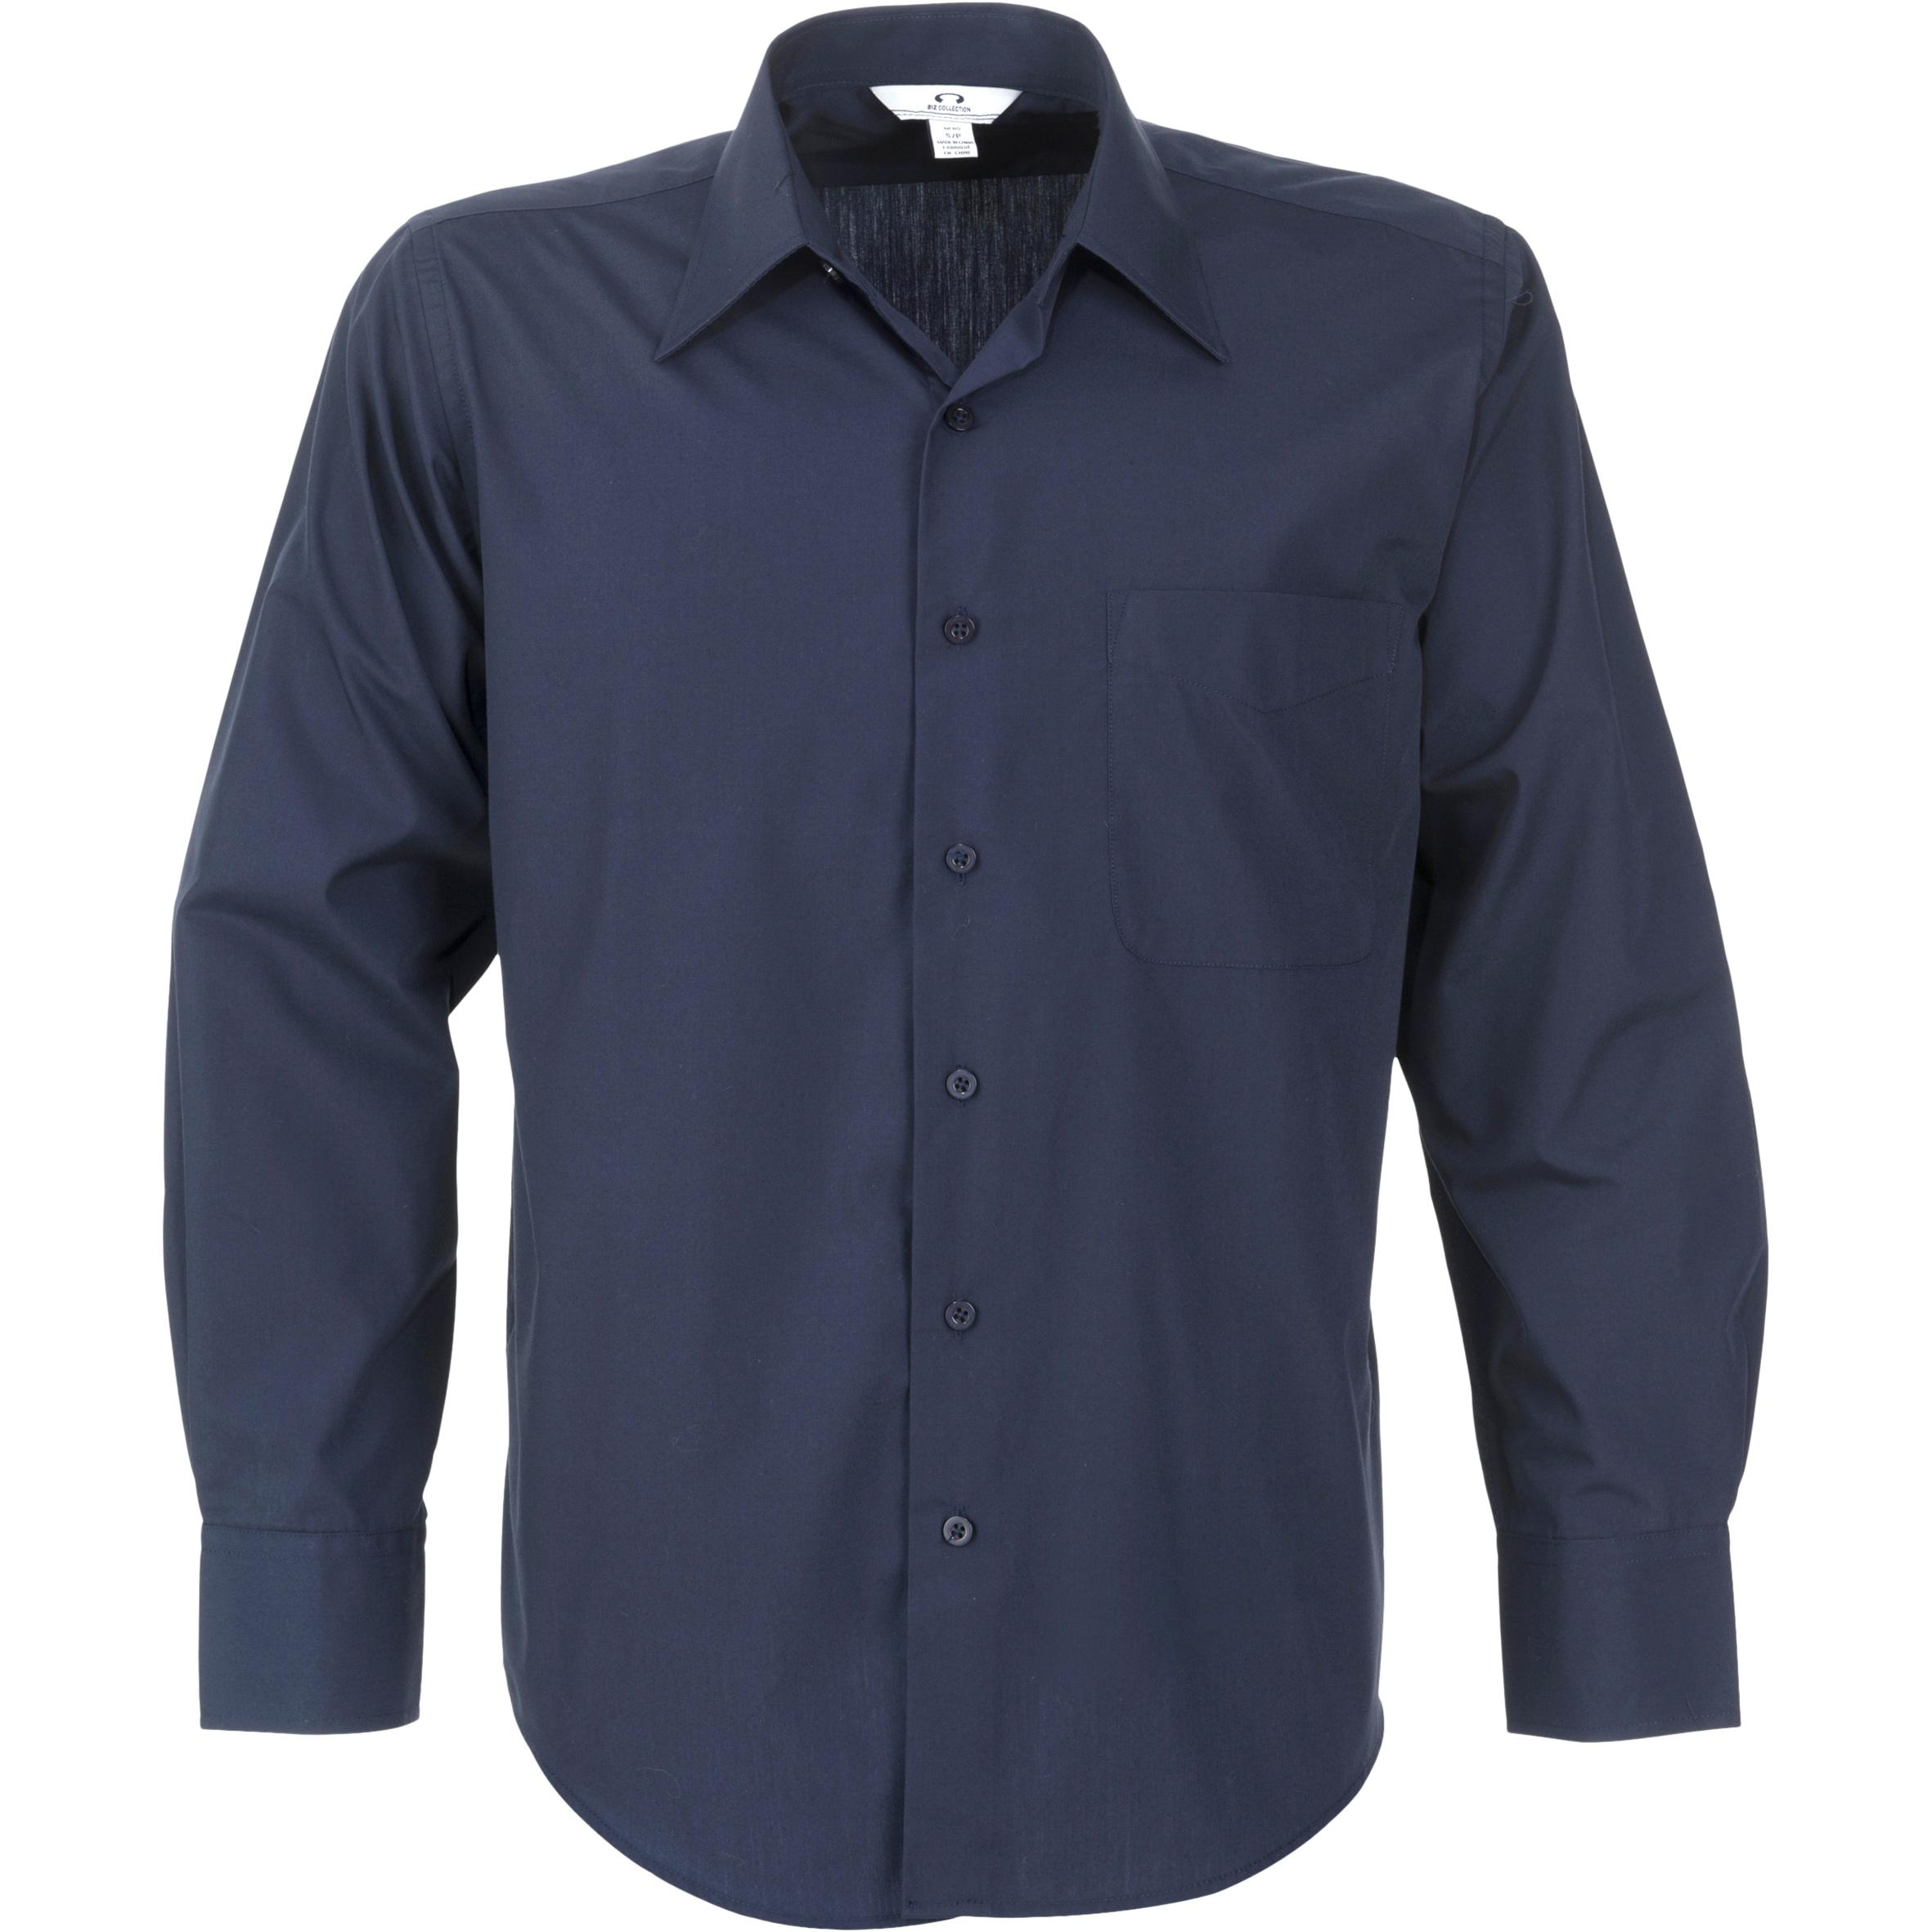 Mens Long Sleeve Metro Shirt - Navy Only